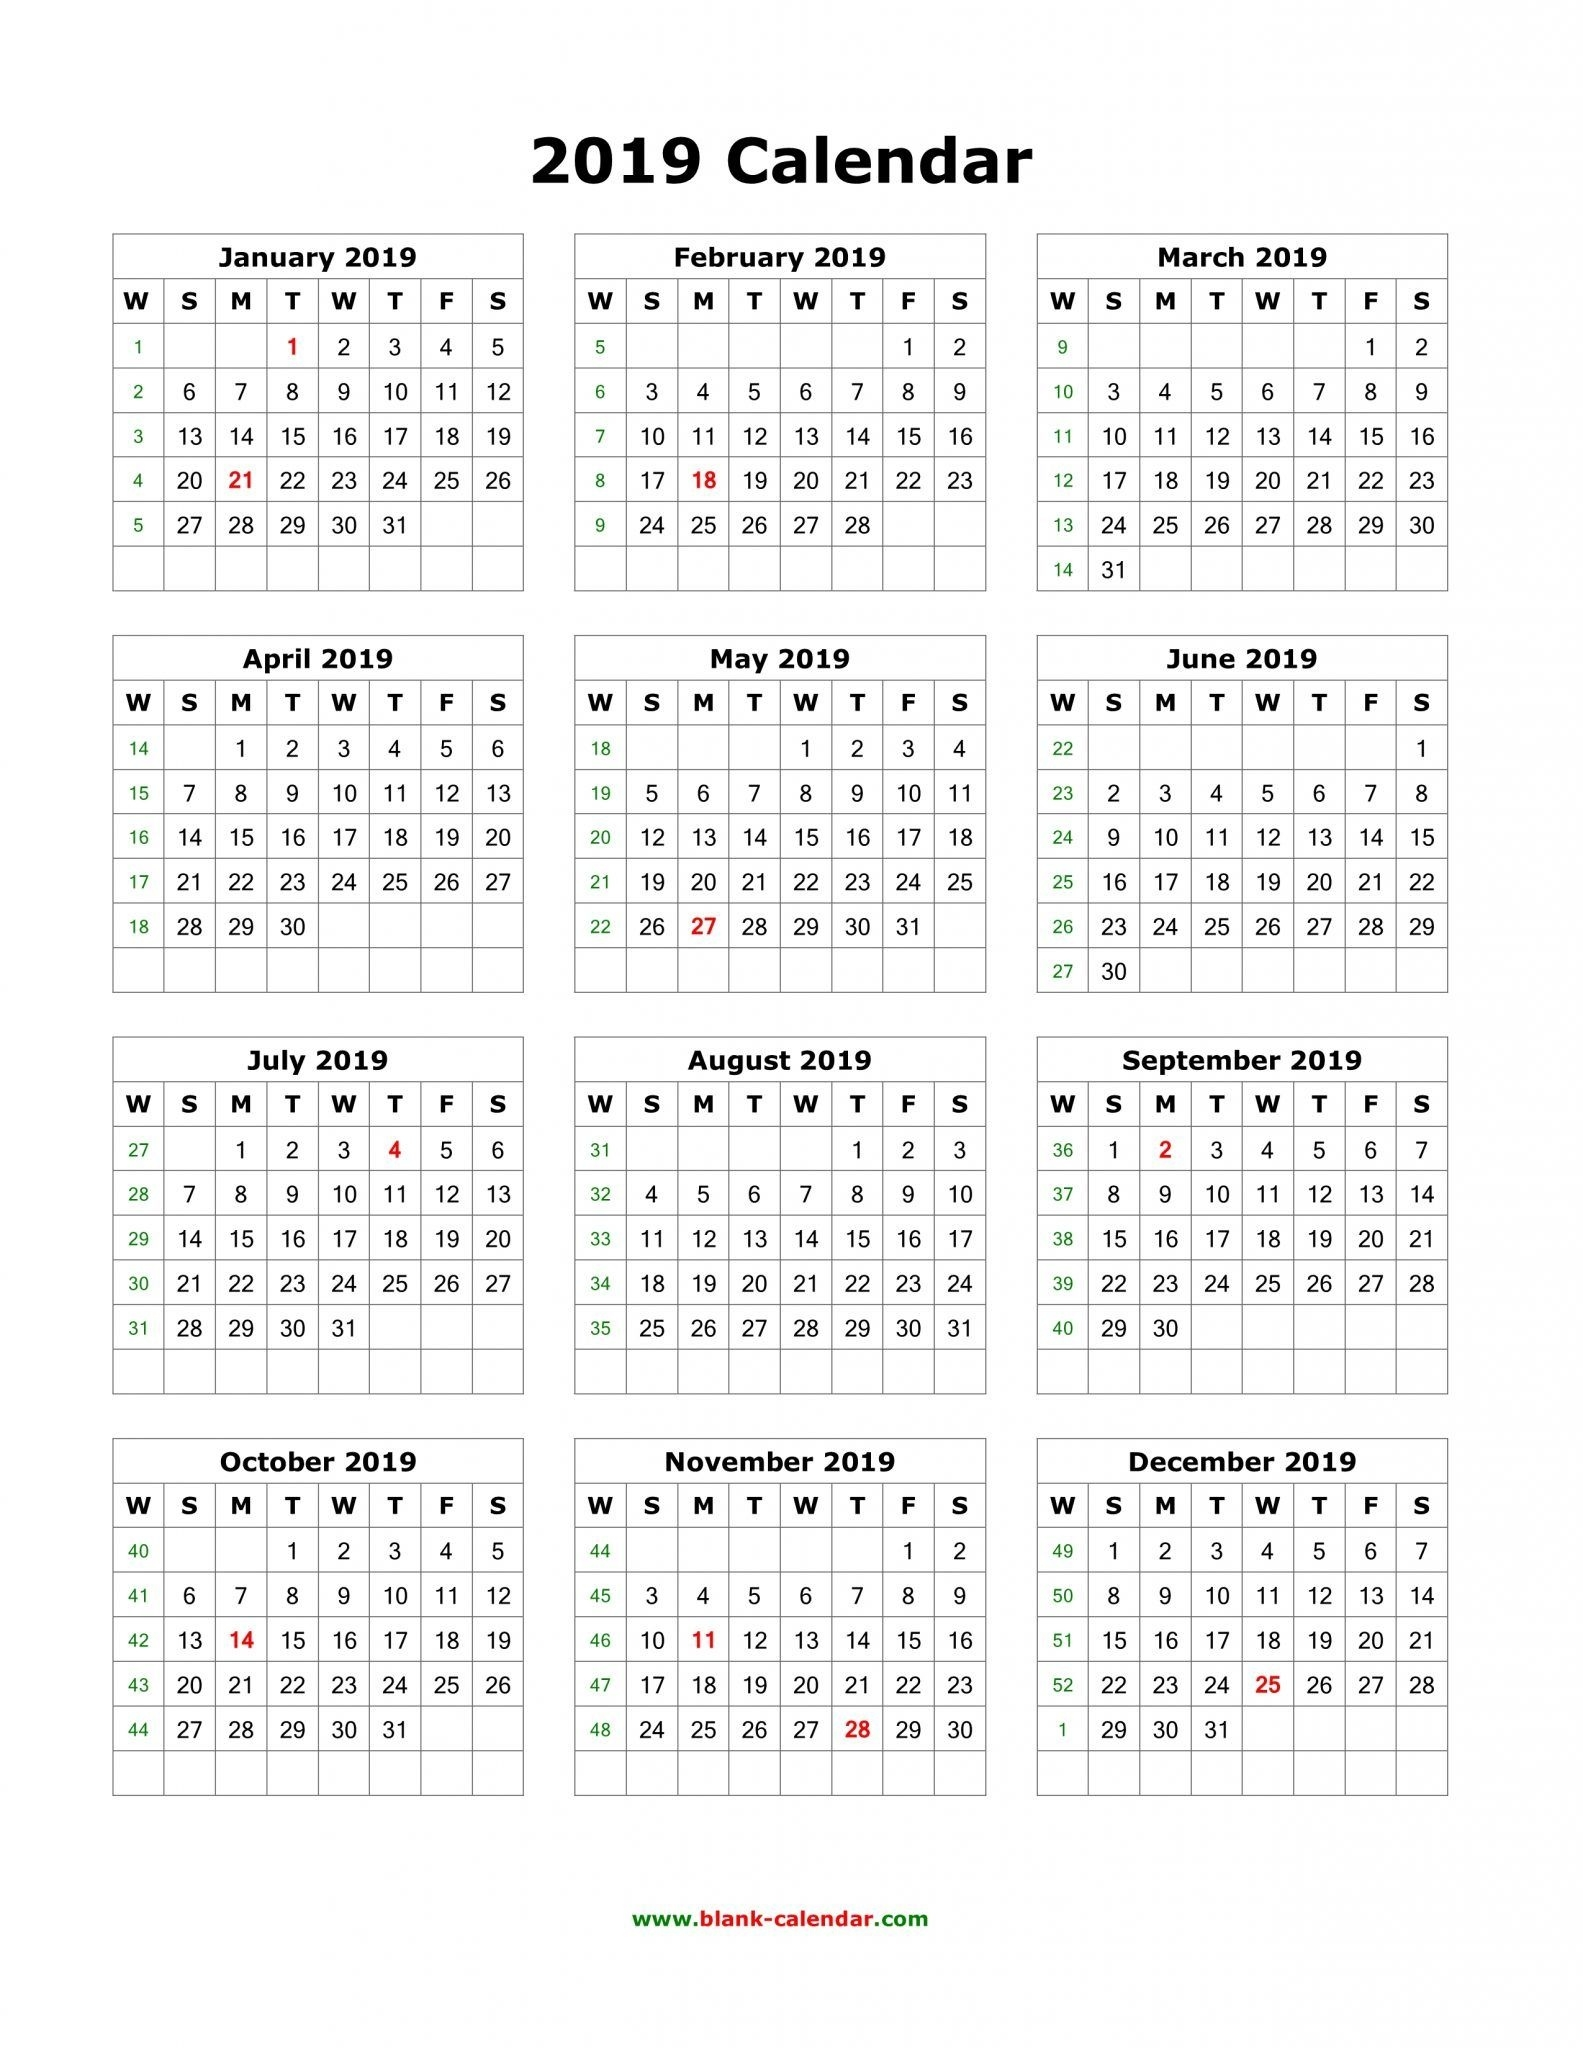 Download Blank 2019 Calendar Templates | 12 Month Calendar In One_4 Week Blank Calendar Printable